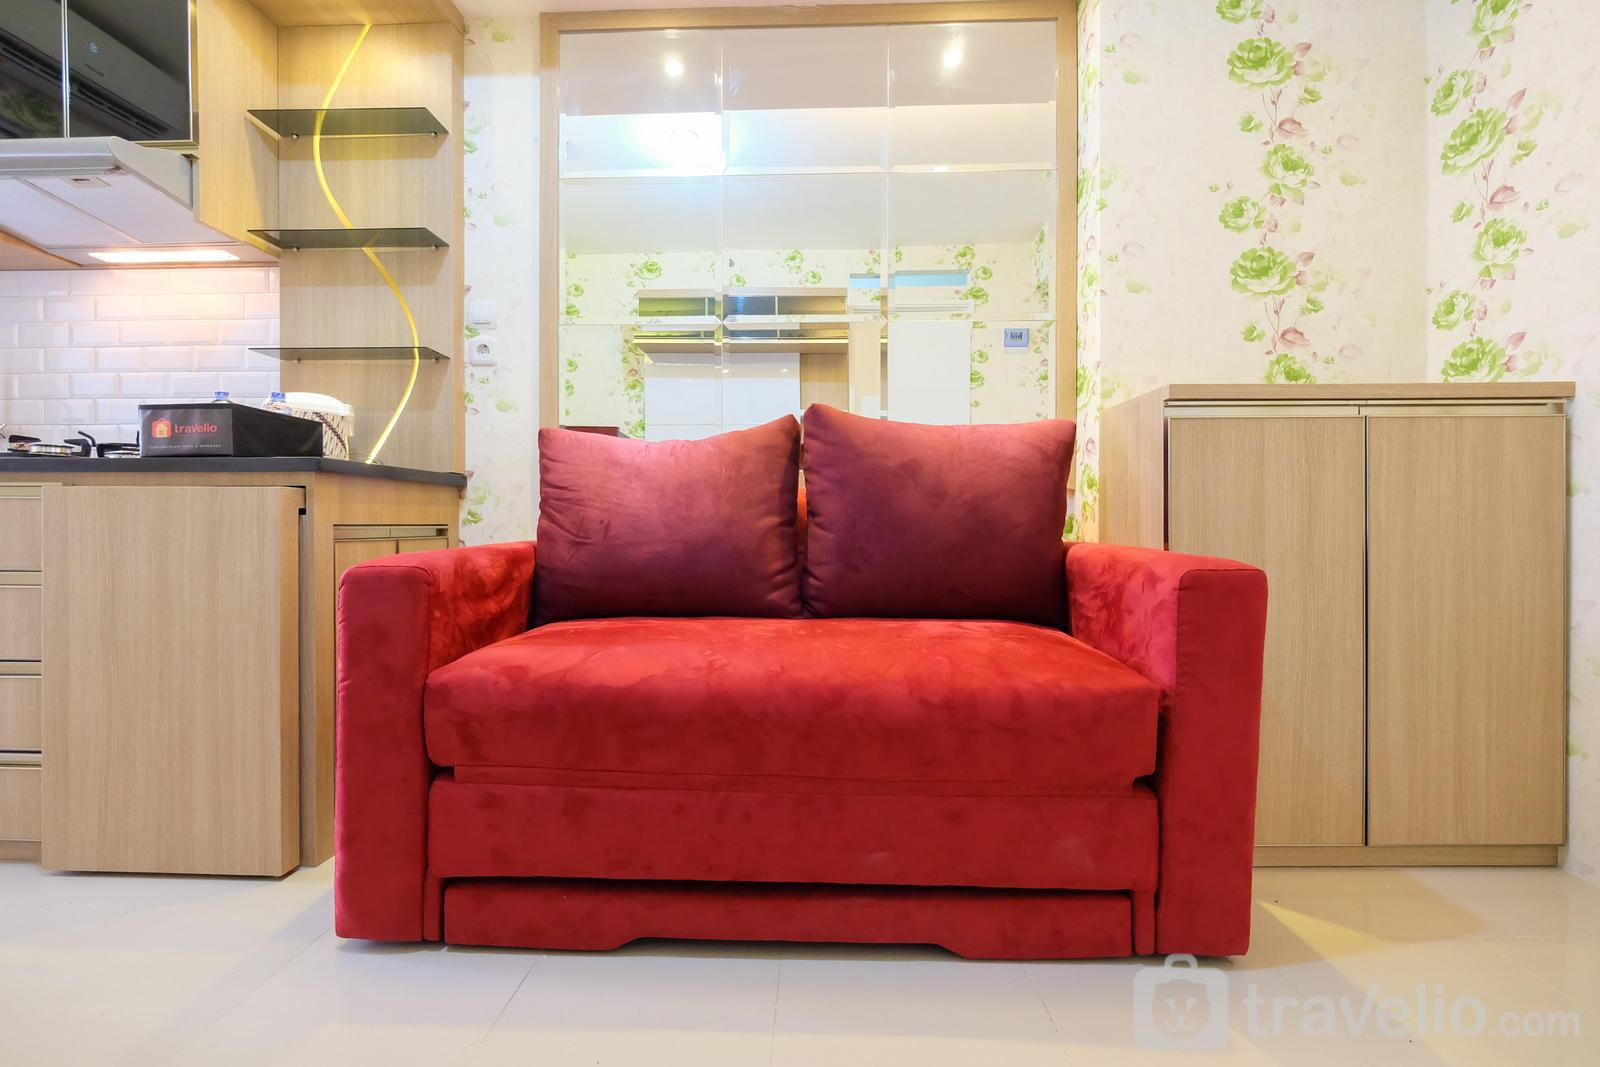 Bassura City Cipinang - Best Price & Comfy 2BR Bassura City Apartment By Travelio